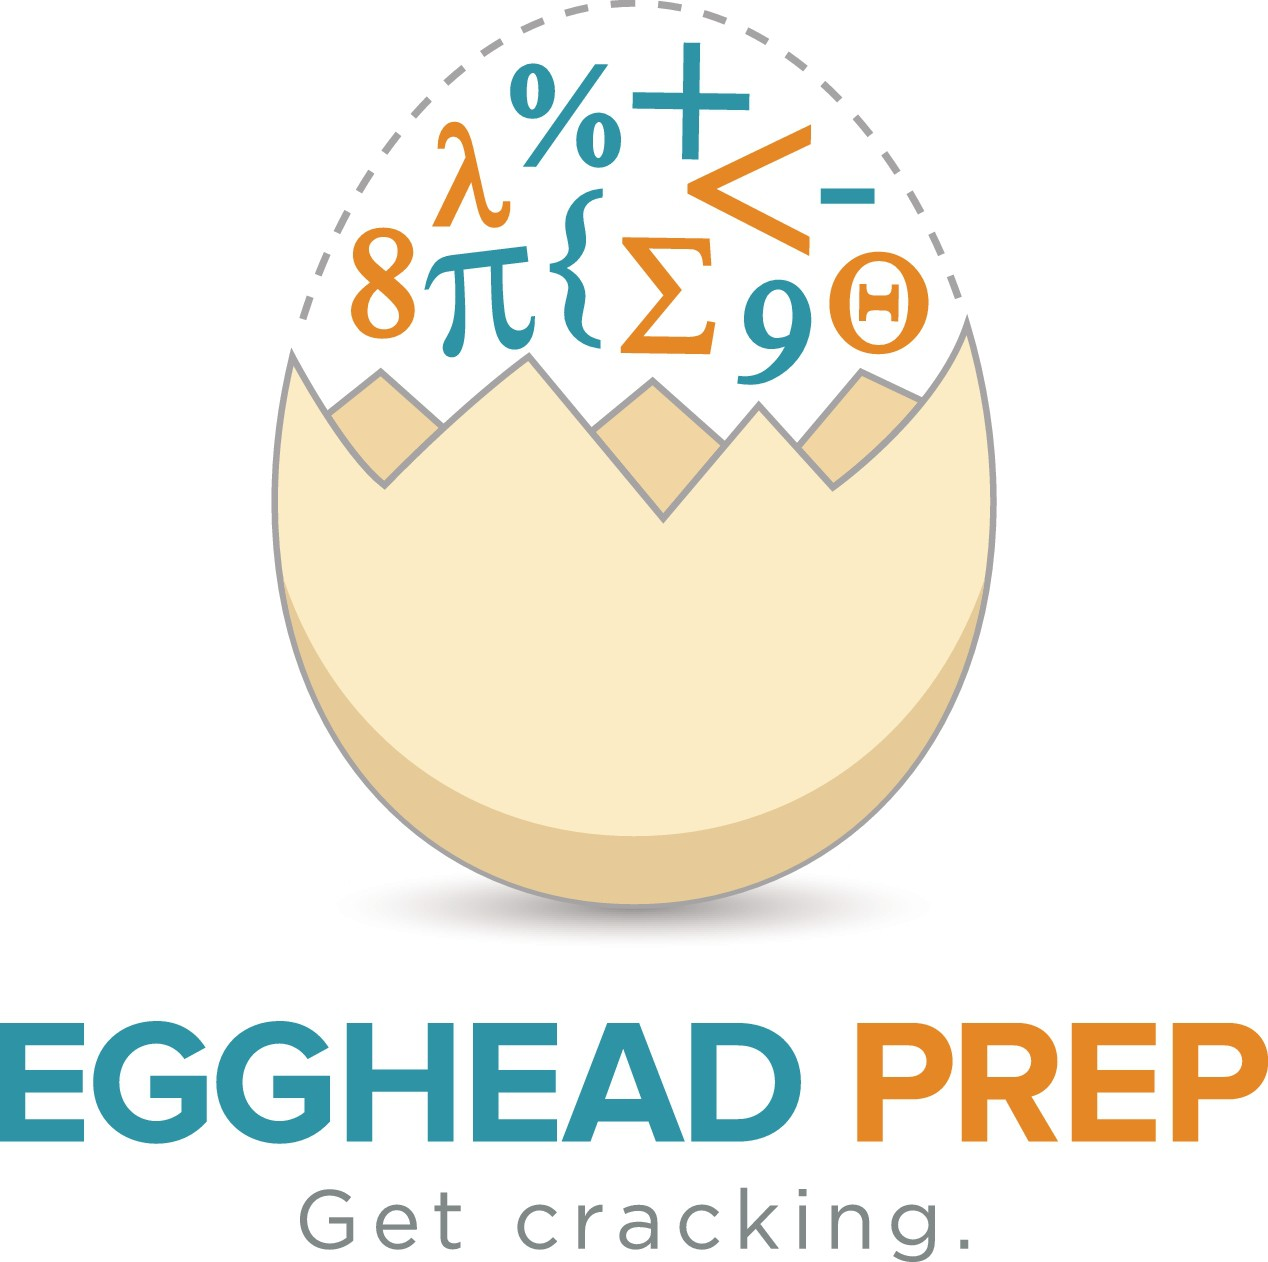 Creative logo needed for Egghead Prep